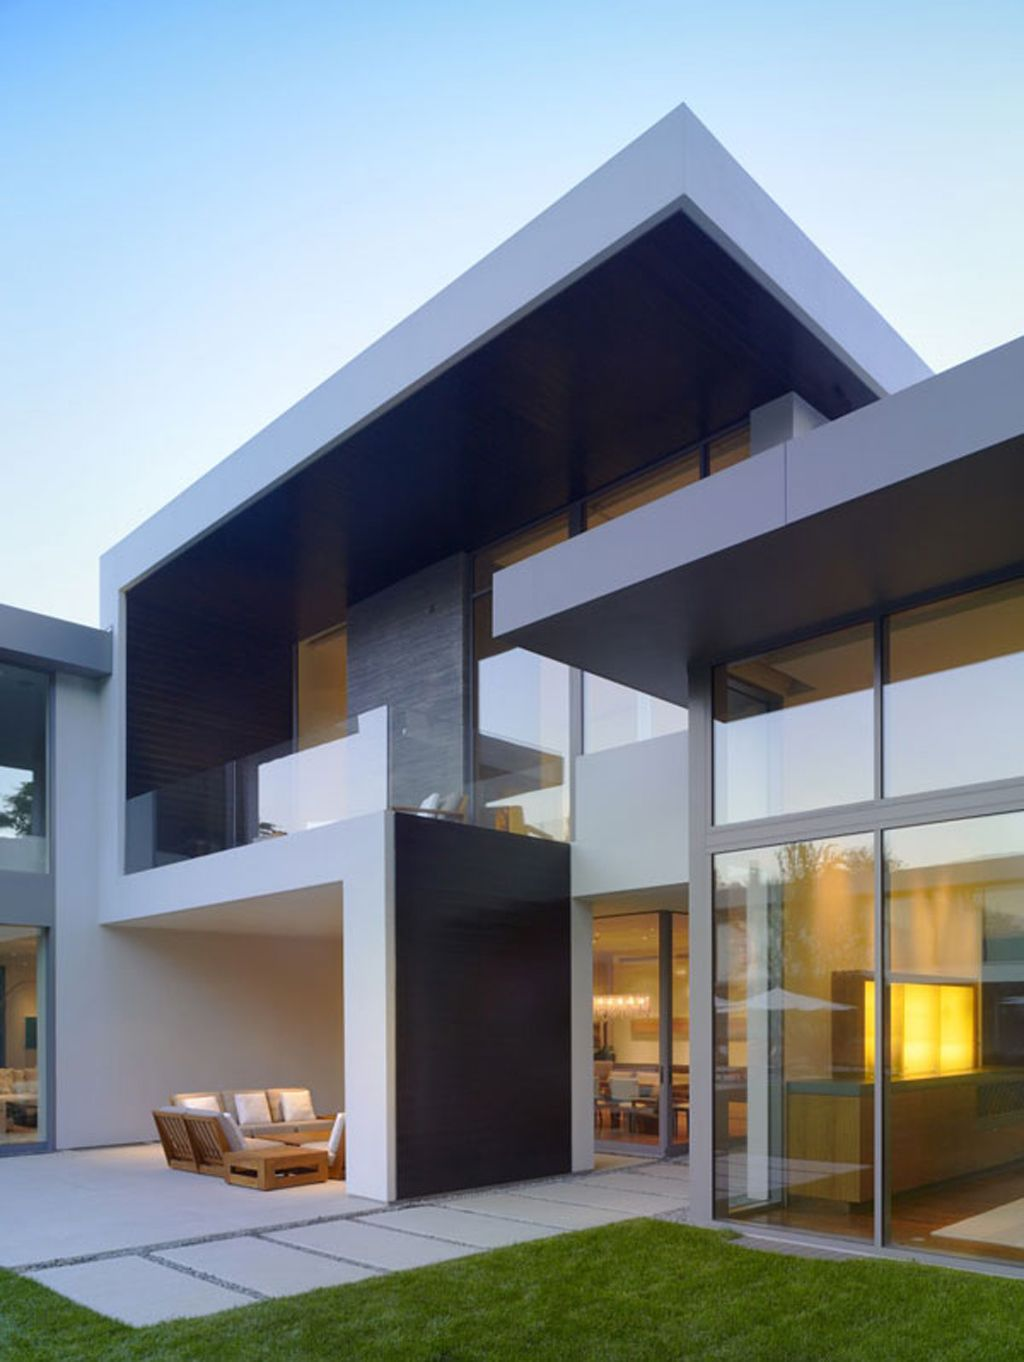 Fine 17 Best Images About Minimalist House Design On Pinterest House Largest Home Design Picture Inspirations Pitcheantrous